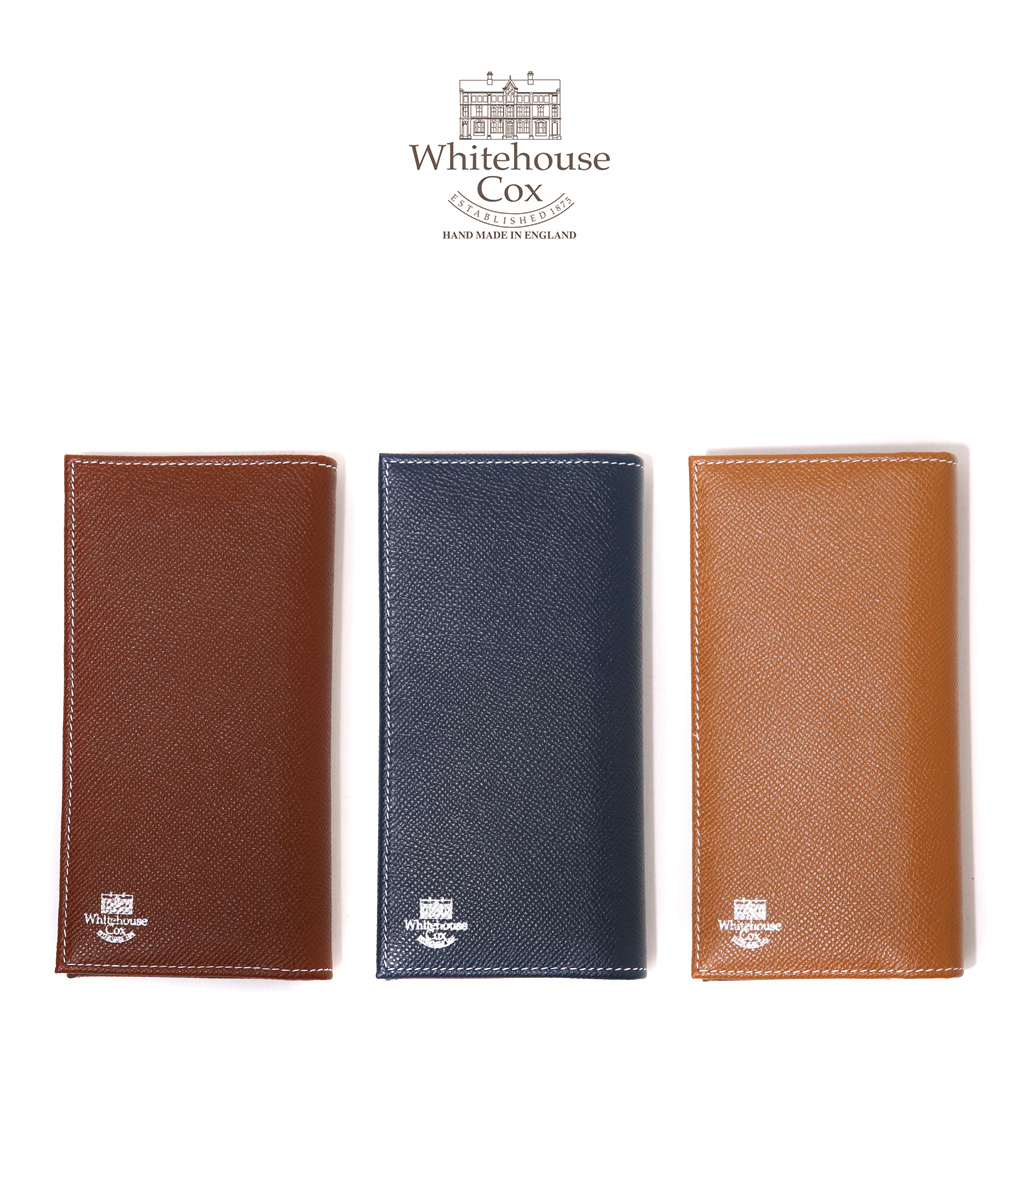 Whitehouse Cox / ホワイトハウスコックス : 【LONDON CALF×BRIDLE LEATHER COLLECTION】LONG WALLET / 全3色 : 長財布 ロングウォレット レザー ギフトラッピング可能 : S-9697-LONDONCALF-BLC【MUS】